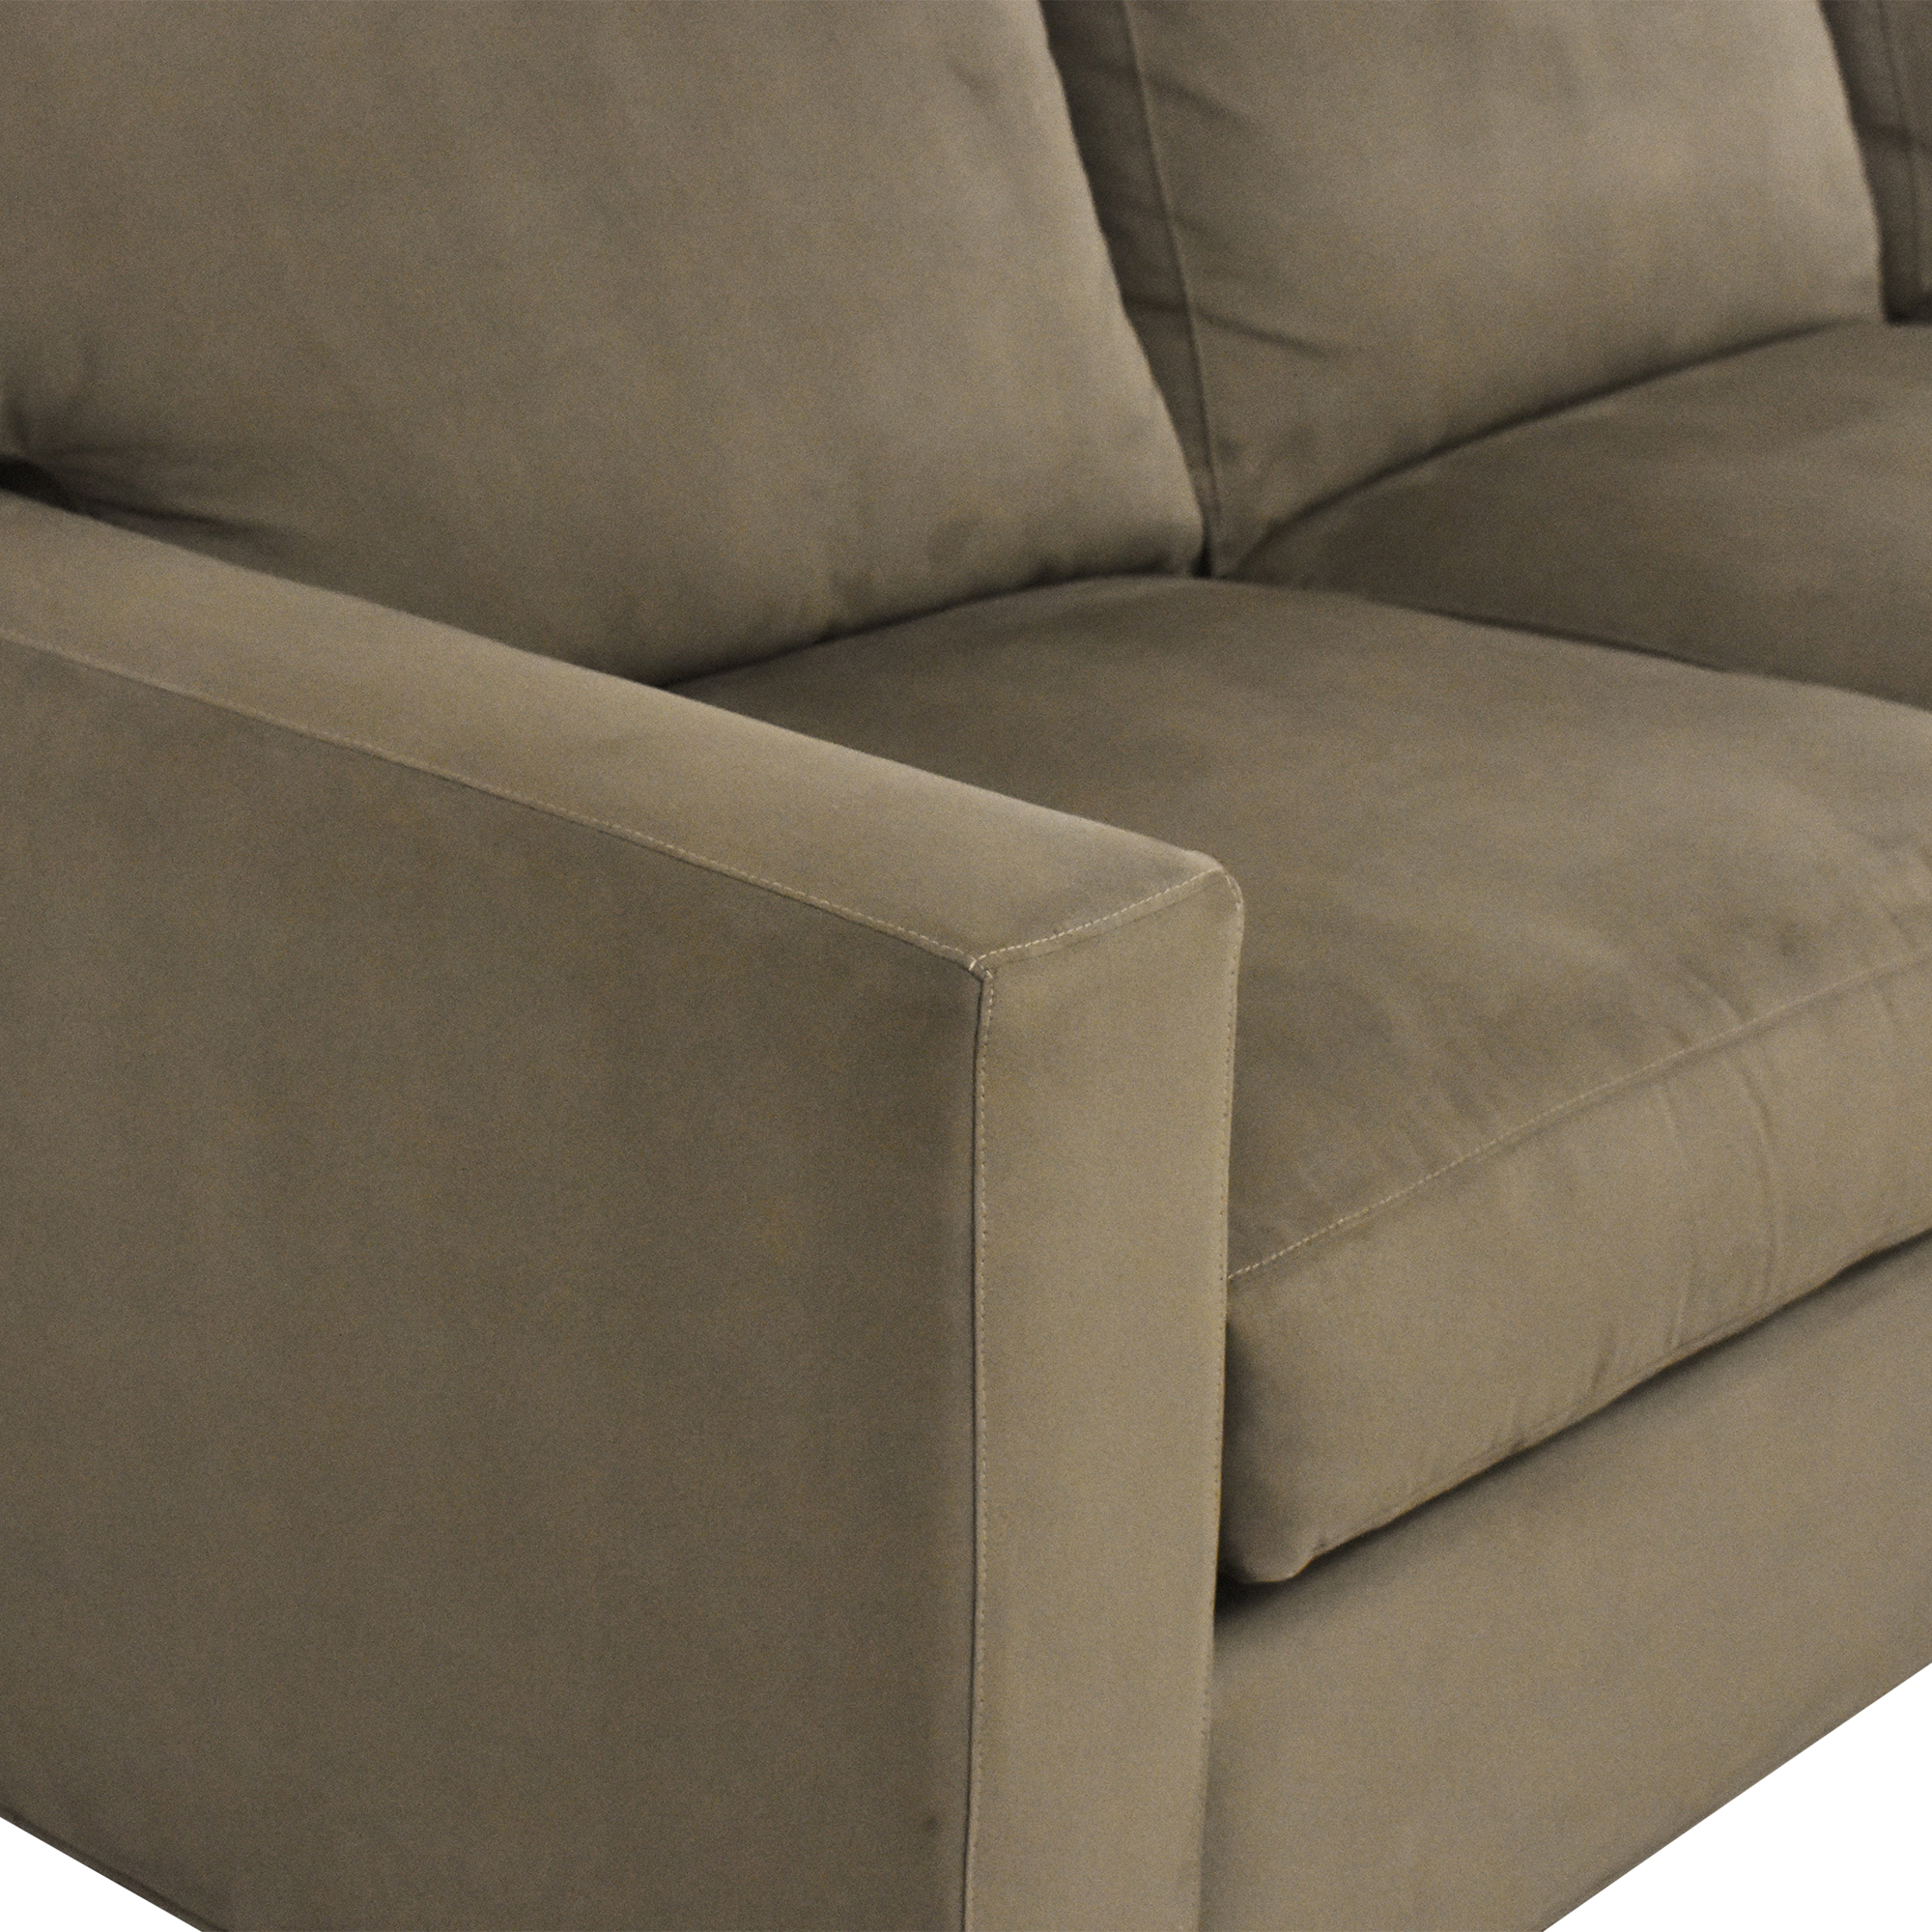 Crate & Barrel Axis II Two Piece Sectional Sofa / Sectionals